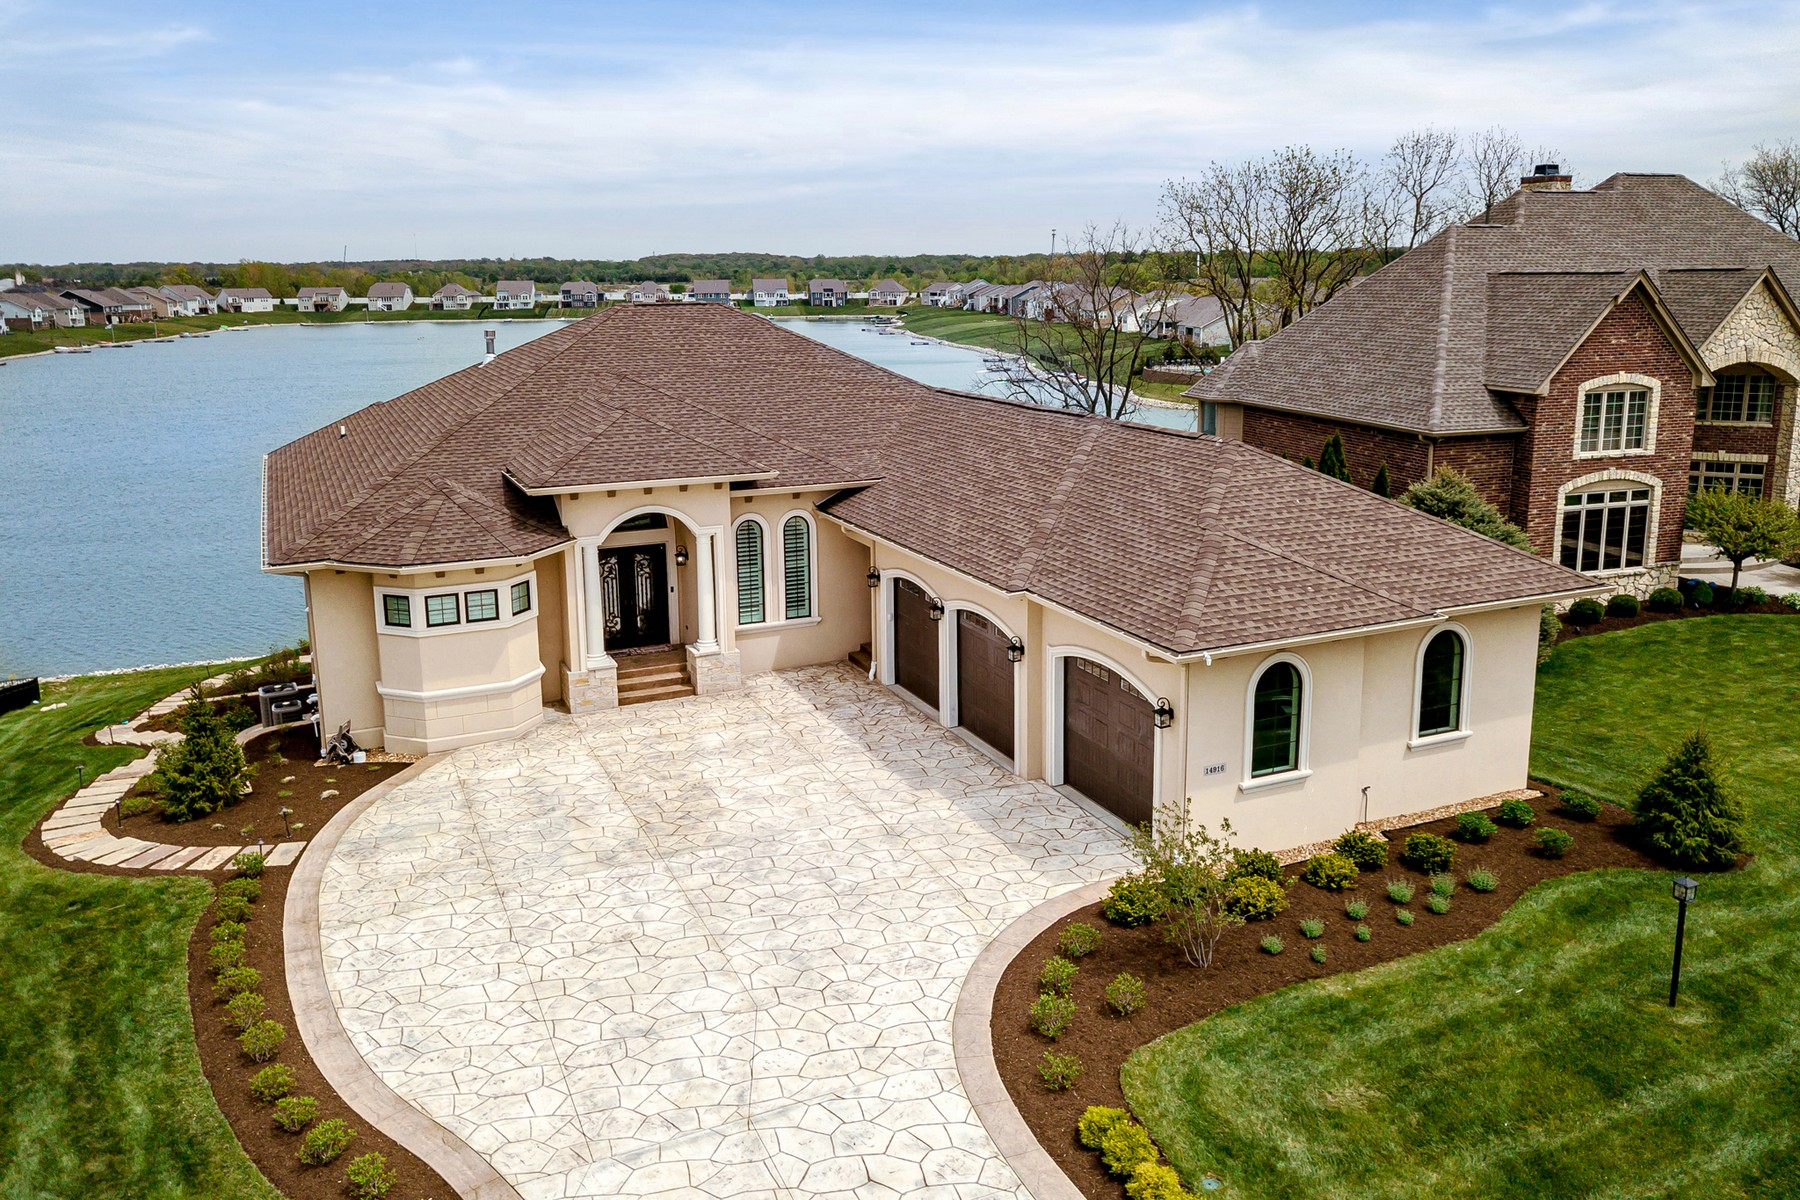 Single Family Homes for Active at Elegant, Lakefront Home 14916 Braemar Avenue E Indianapolis, Indiana 46062 United States